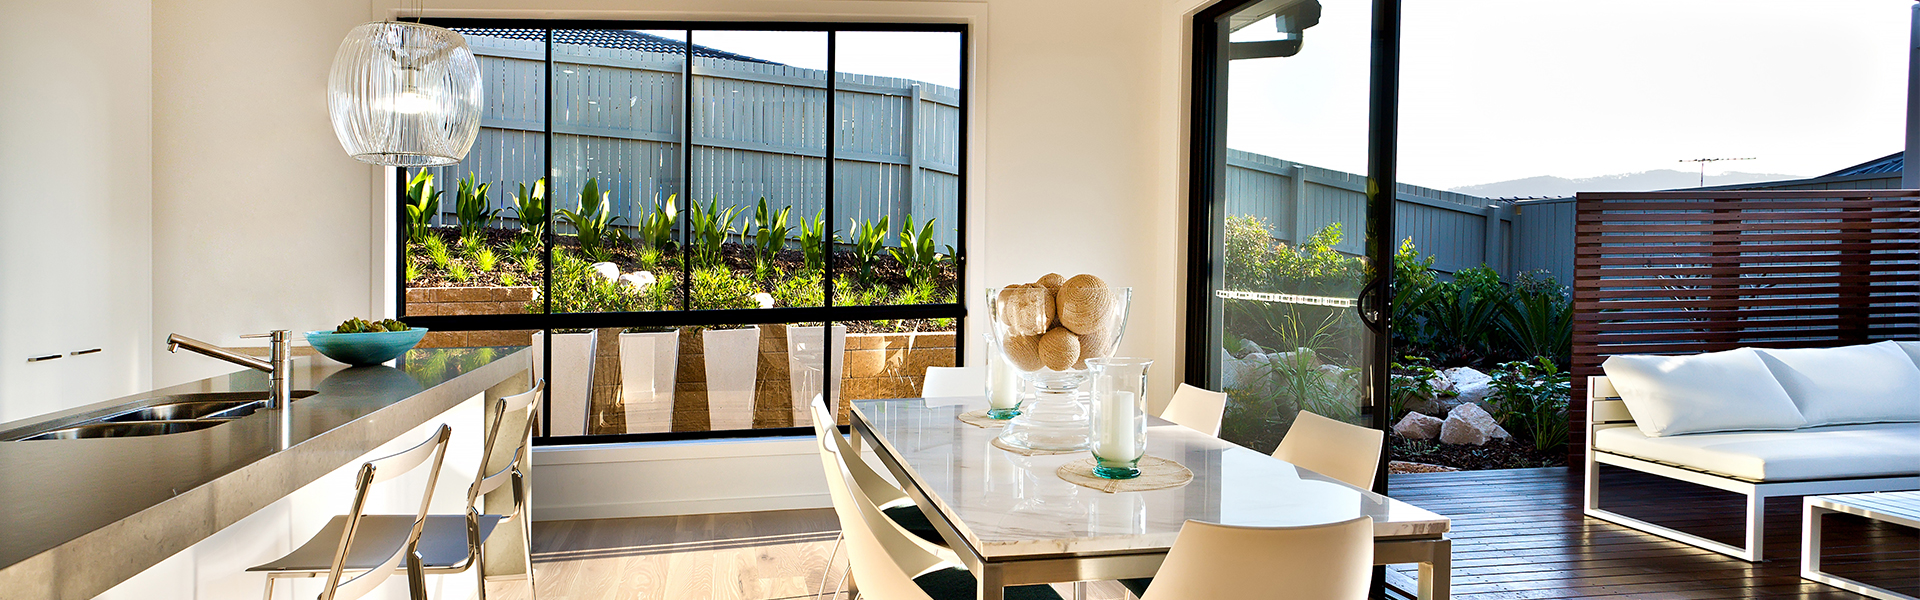 Aluminium Patio Doors Prices Dorset